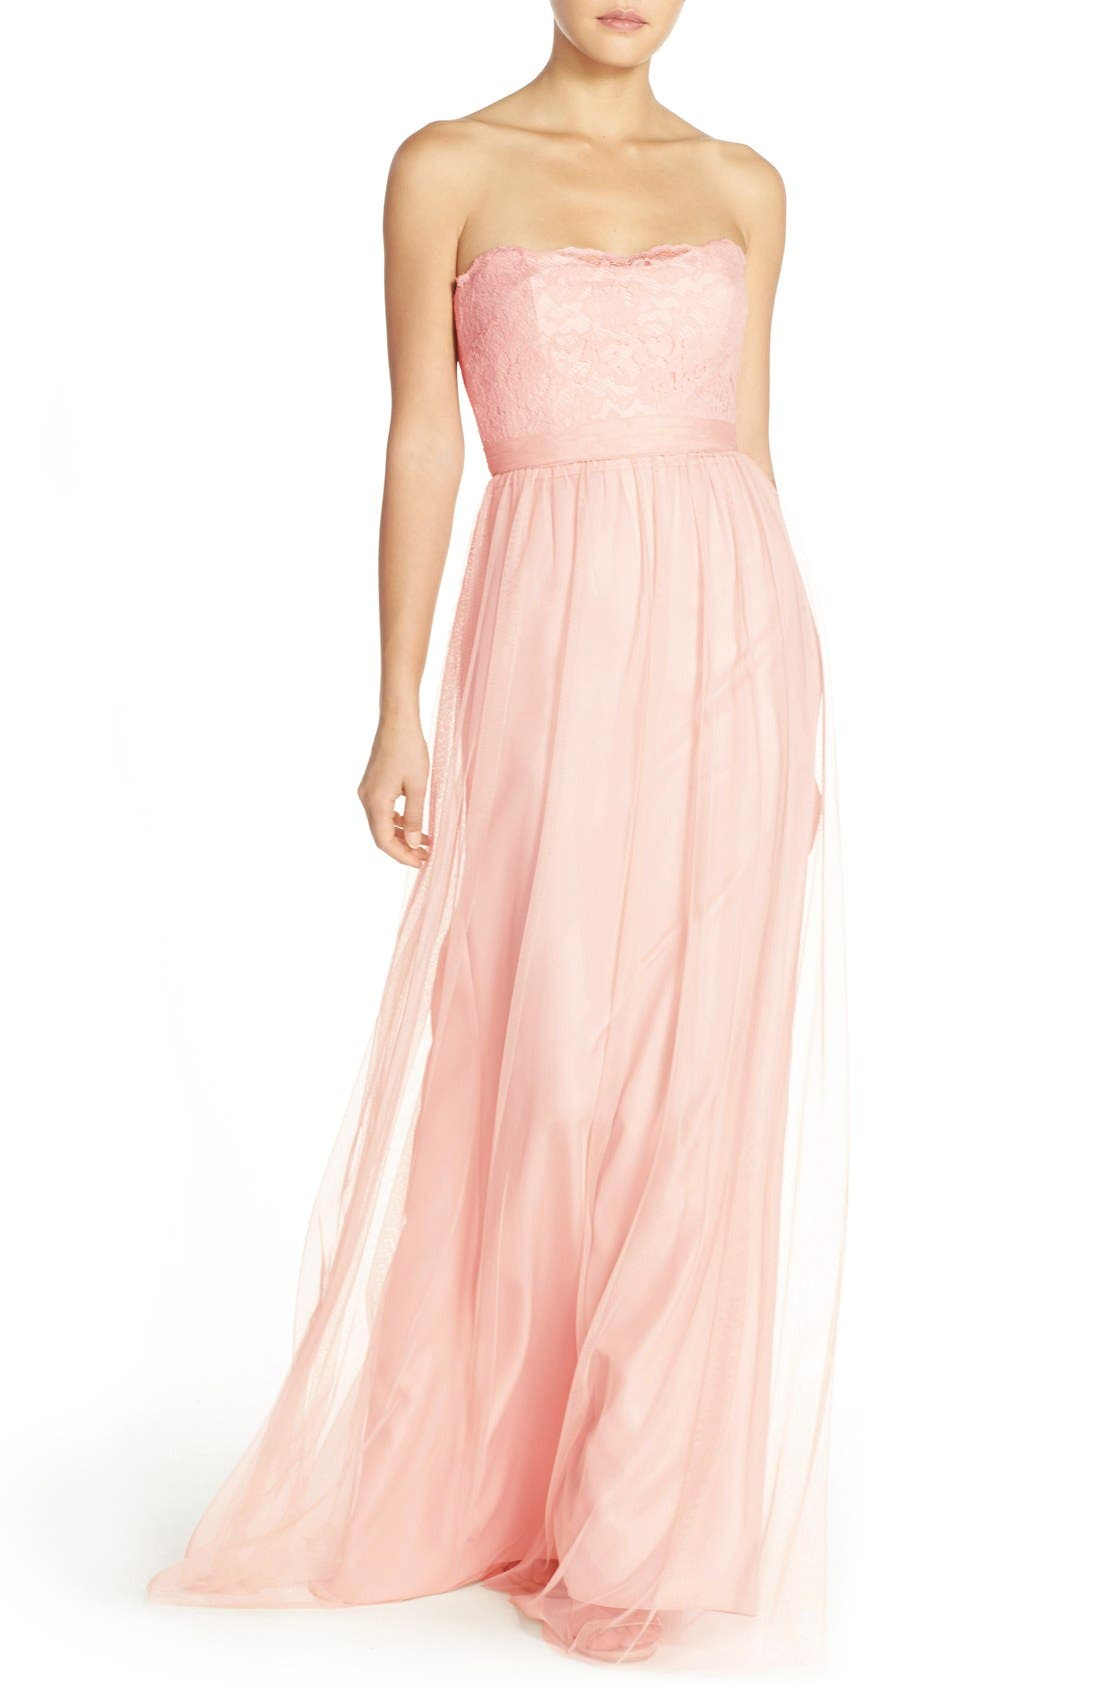 Alternate Image 1 Selected - Amsale 'Calla' Strapless Lace & Tulle Gown